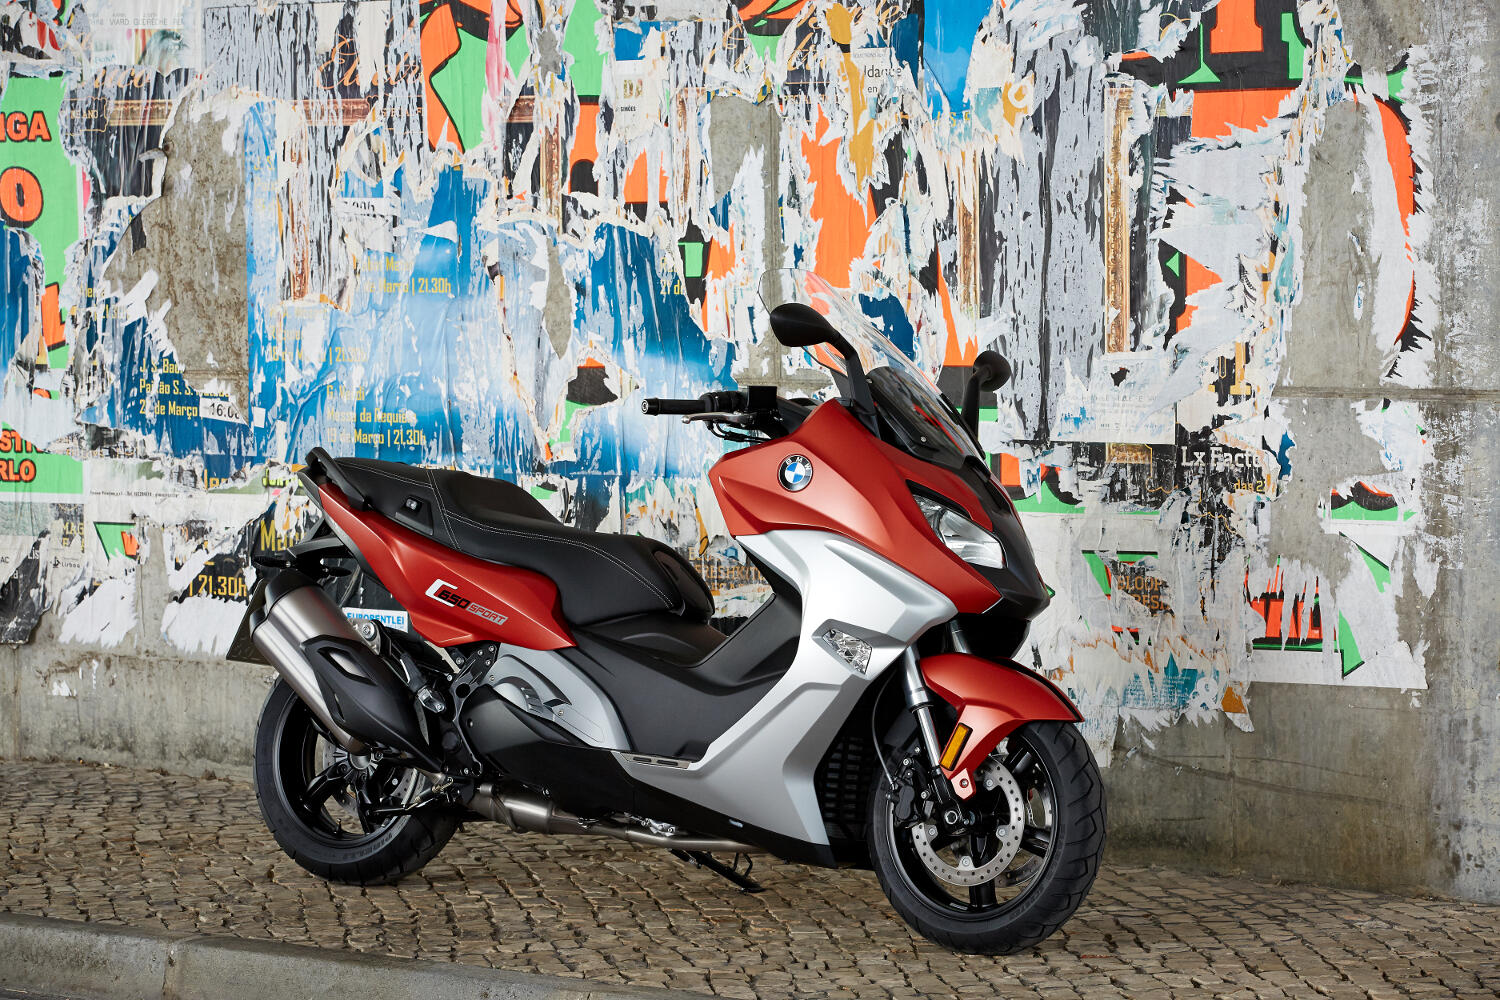 New BMW C 650 Sport and C 650 GT Scooters | ResCogs